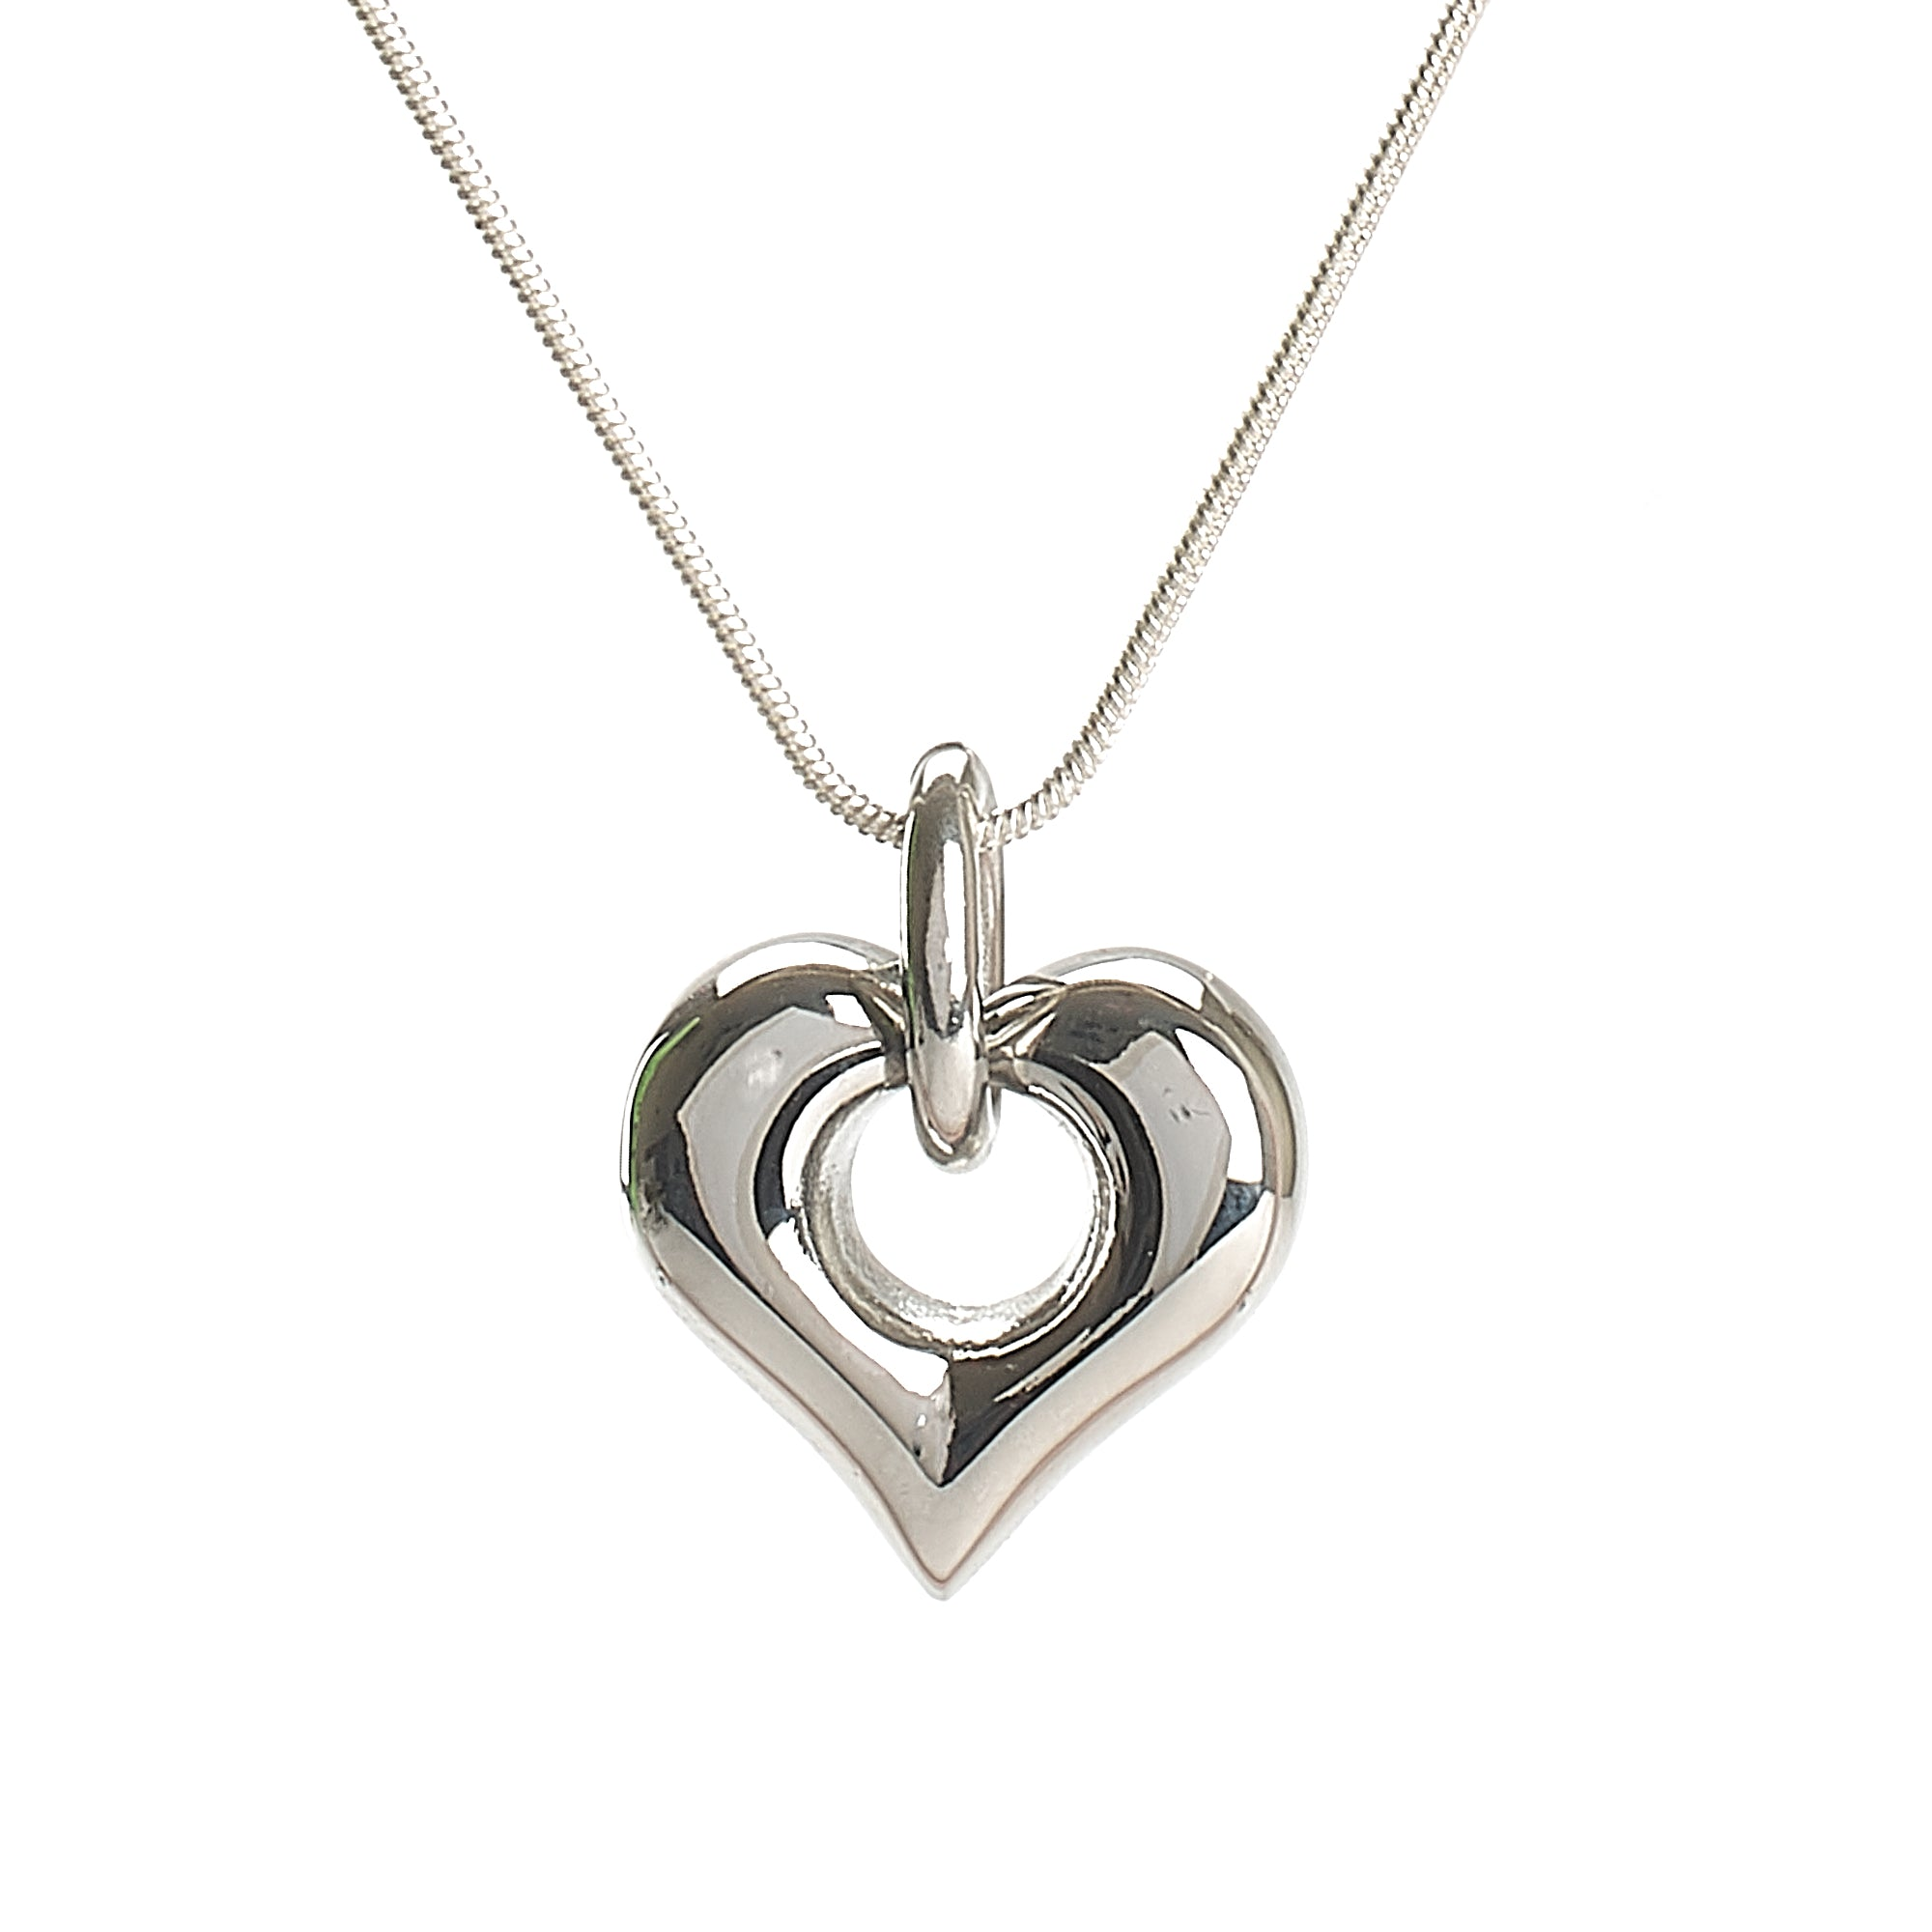 Cremation Pendant - Silver High Shine Heart